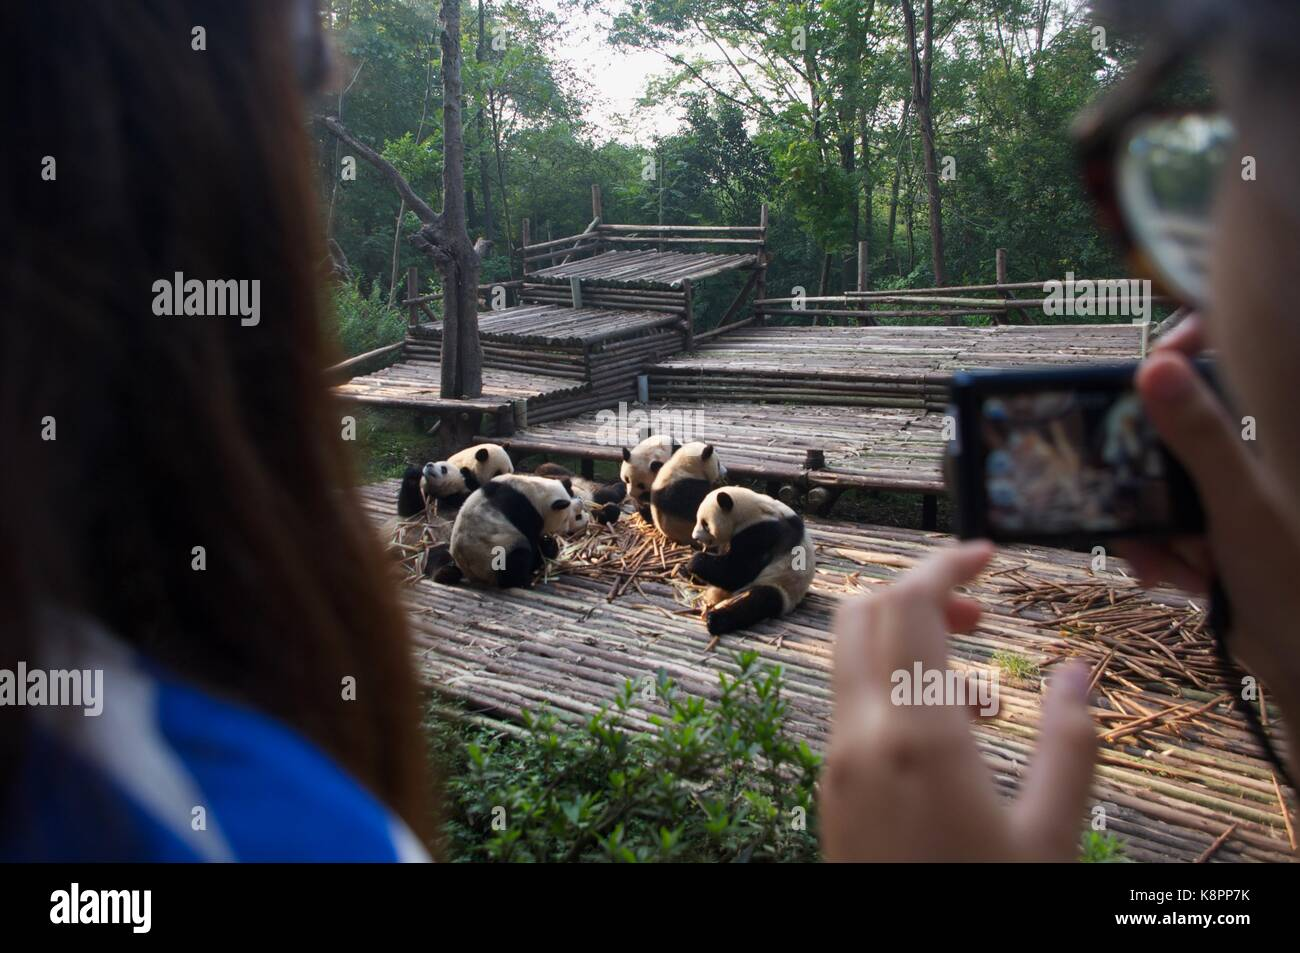 Tourists take photos of young pandas eating their breakfast at Chengdu Panda Breeding Research Center in August - Stock Image